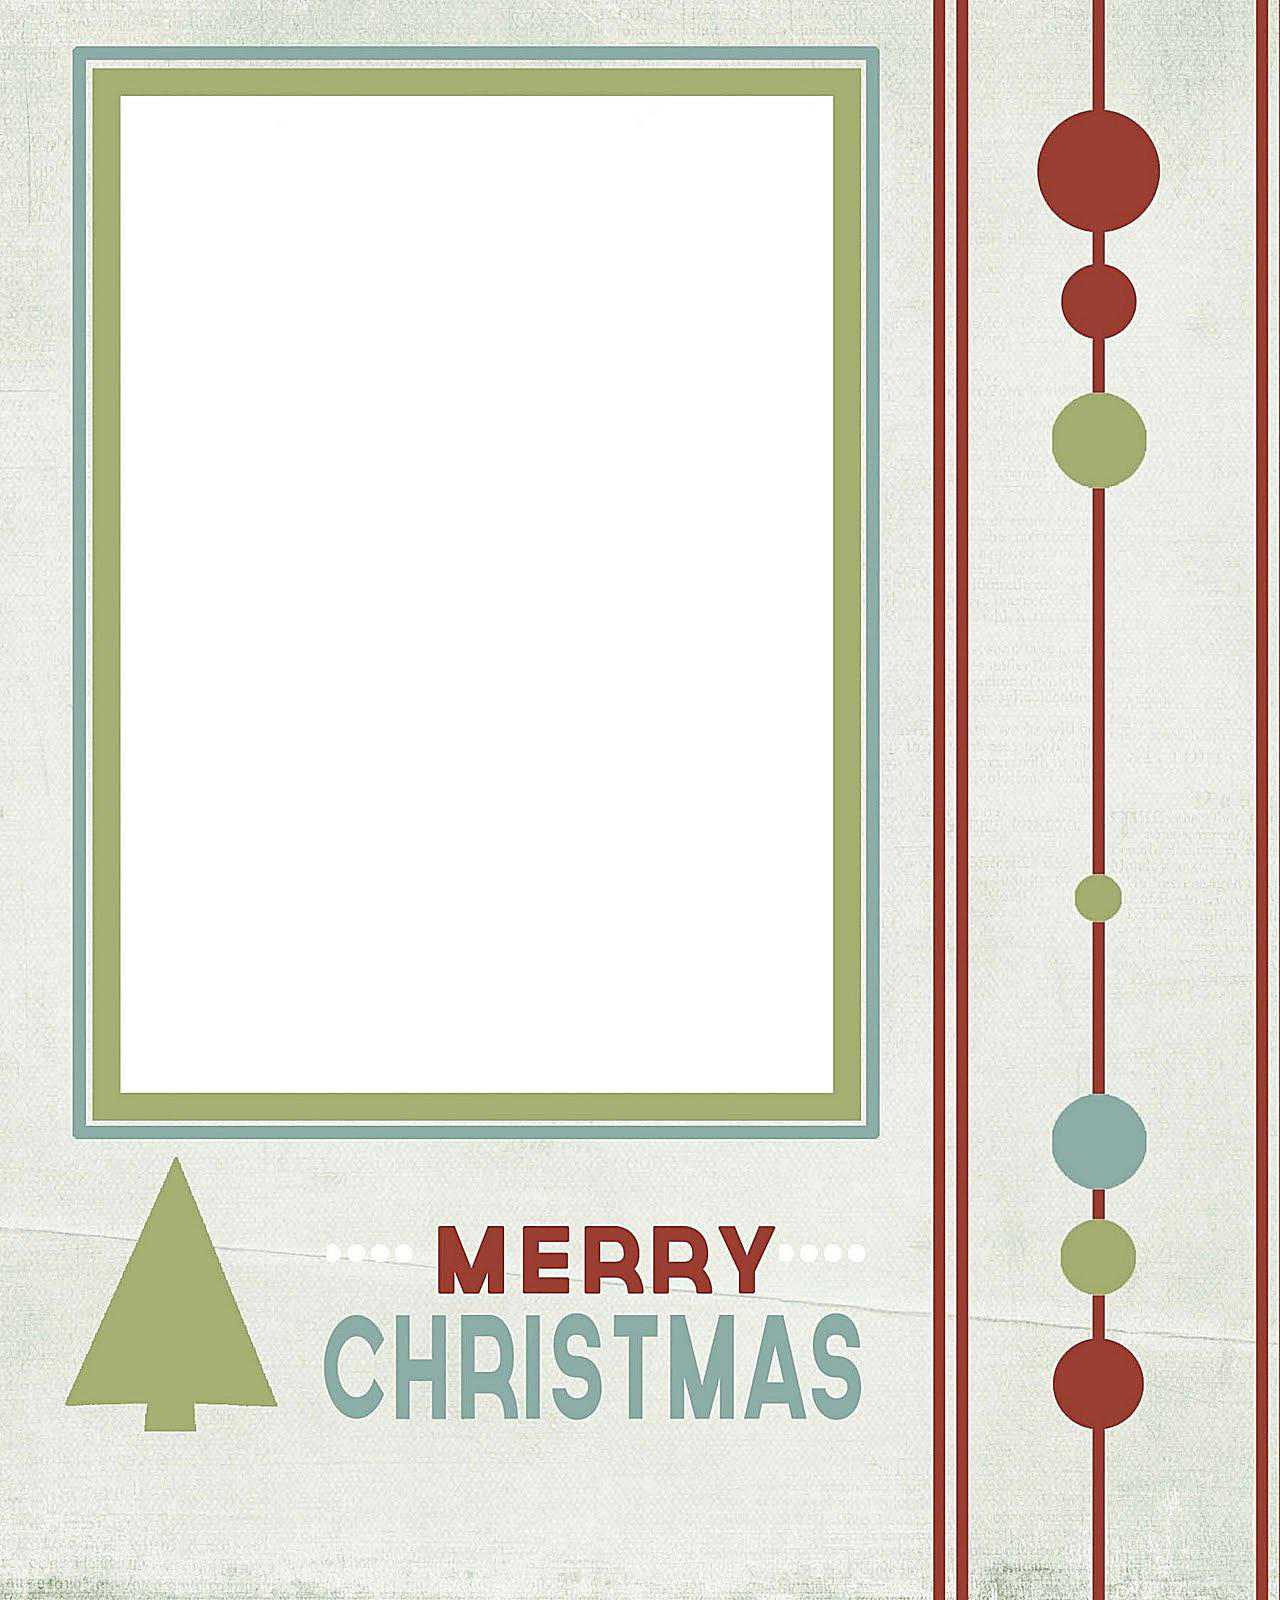 11 Free Templates For Christmas Photo Cards - Free Printable Christmas Card Templates